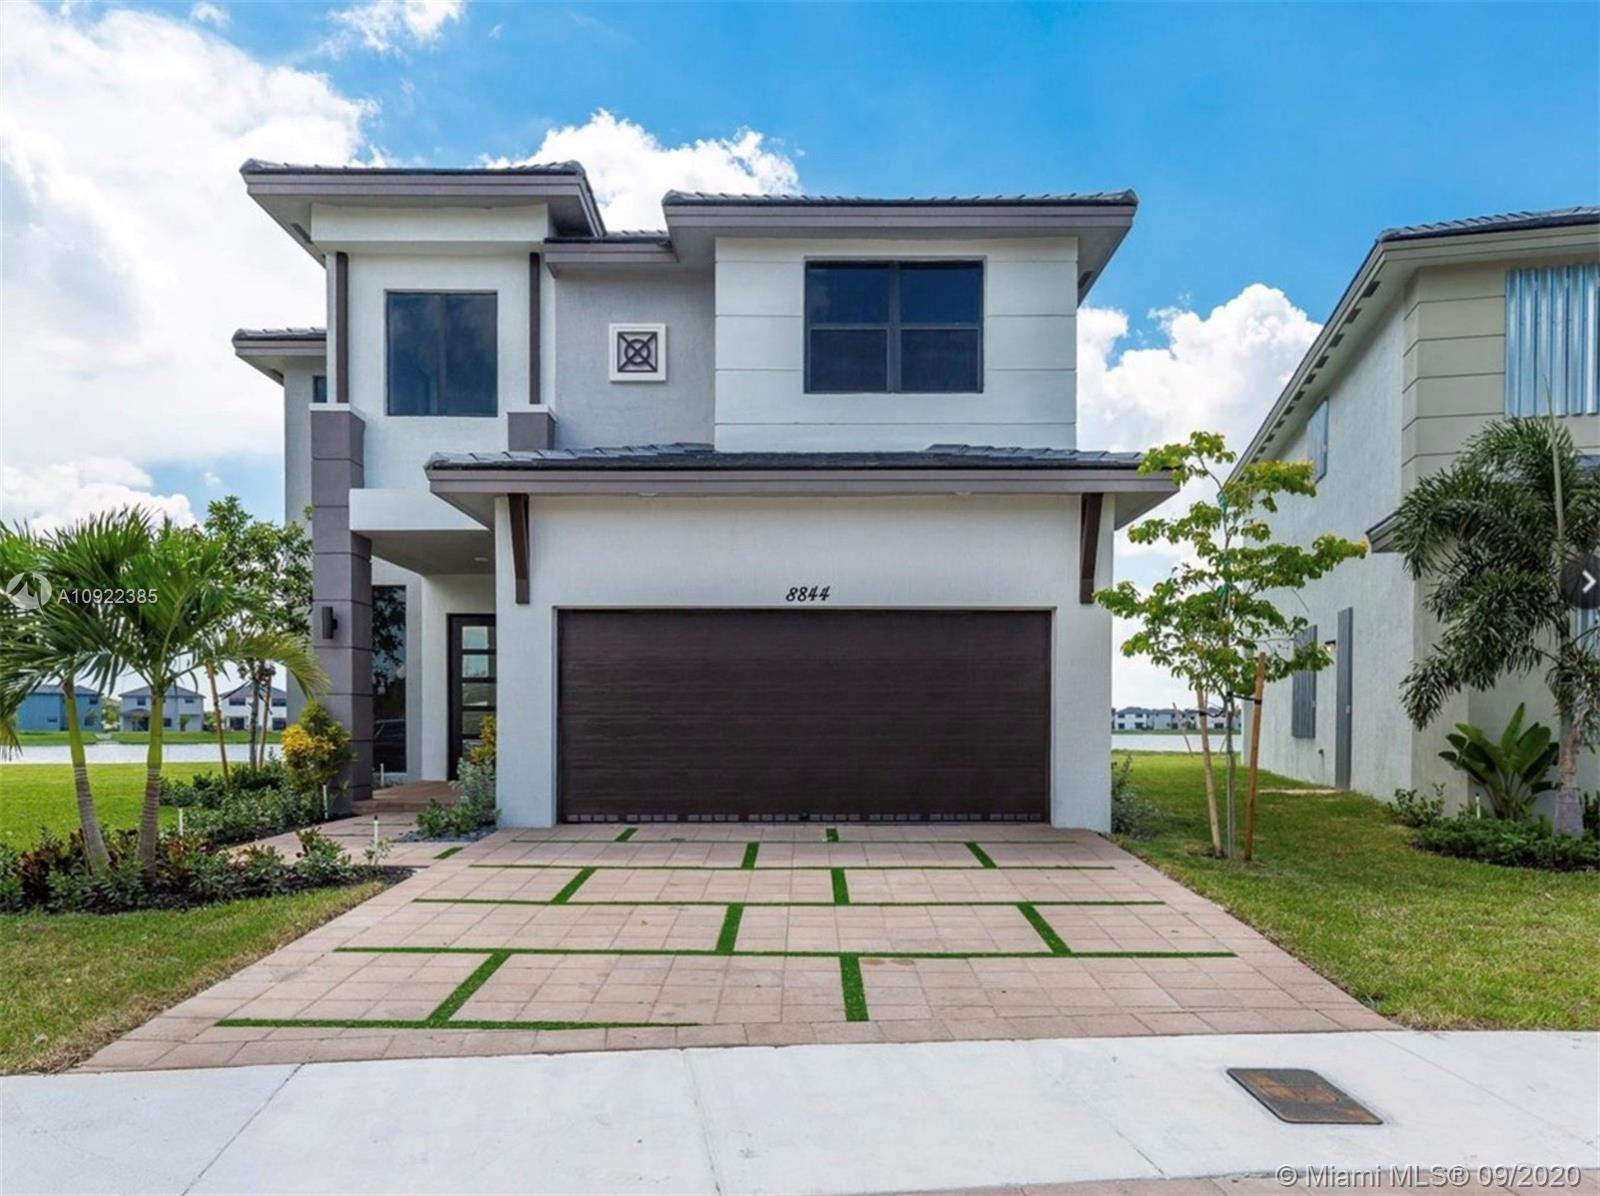 8844 NW 160th Ter #8844 For Sale A10922385, FL